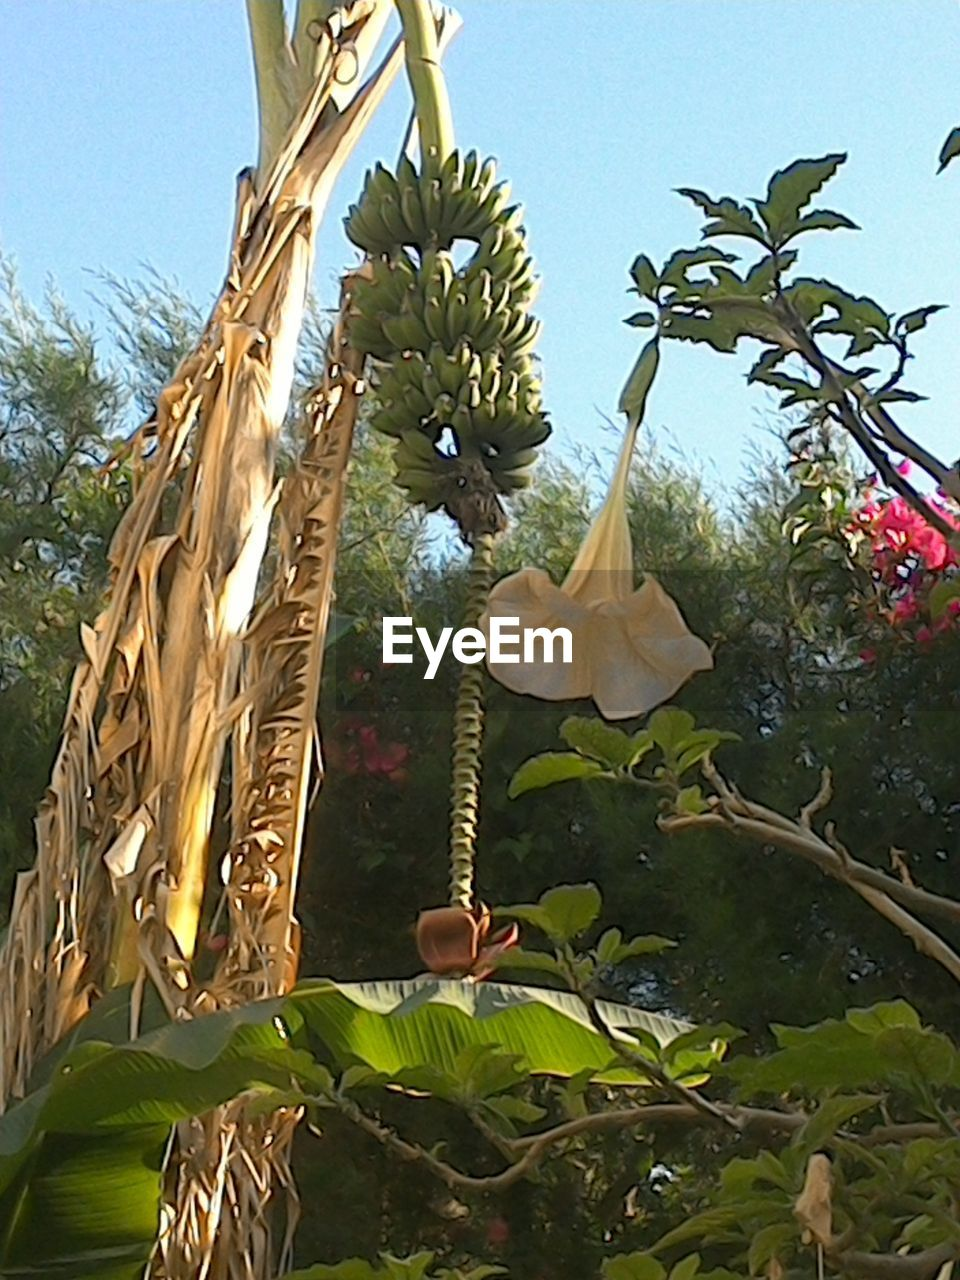 leaf, growth, tree, low angle view, day, nature, plant, banana tree, no people, beauty in nature, flower, outdoors, green color, branch, close-up, freshness, sky